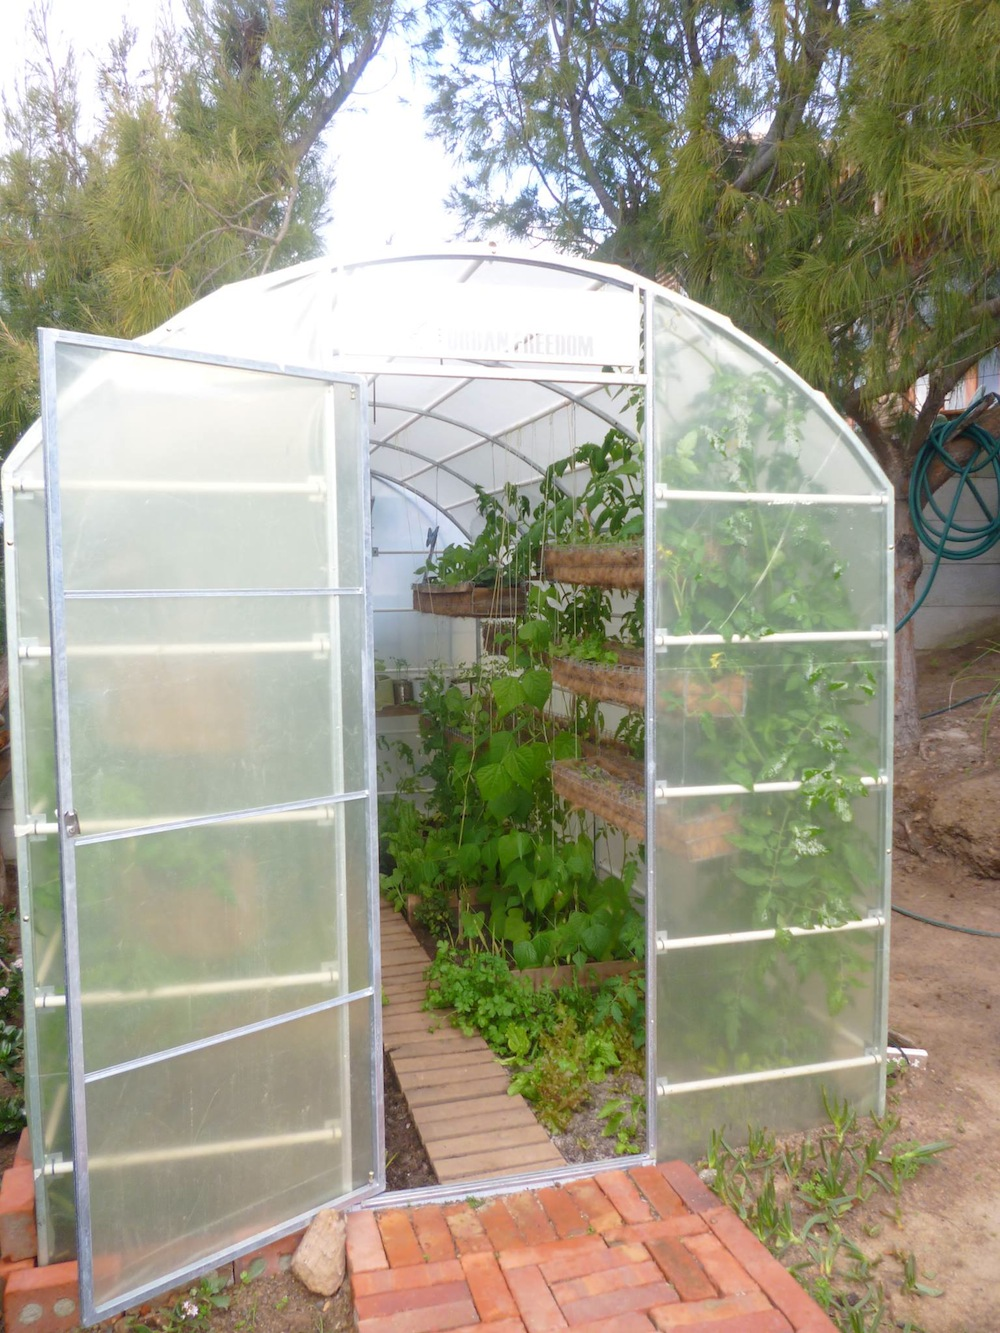 Good use of vertical space in this newly established greenhouse